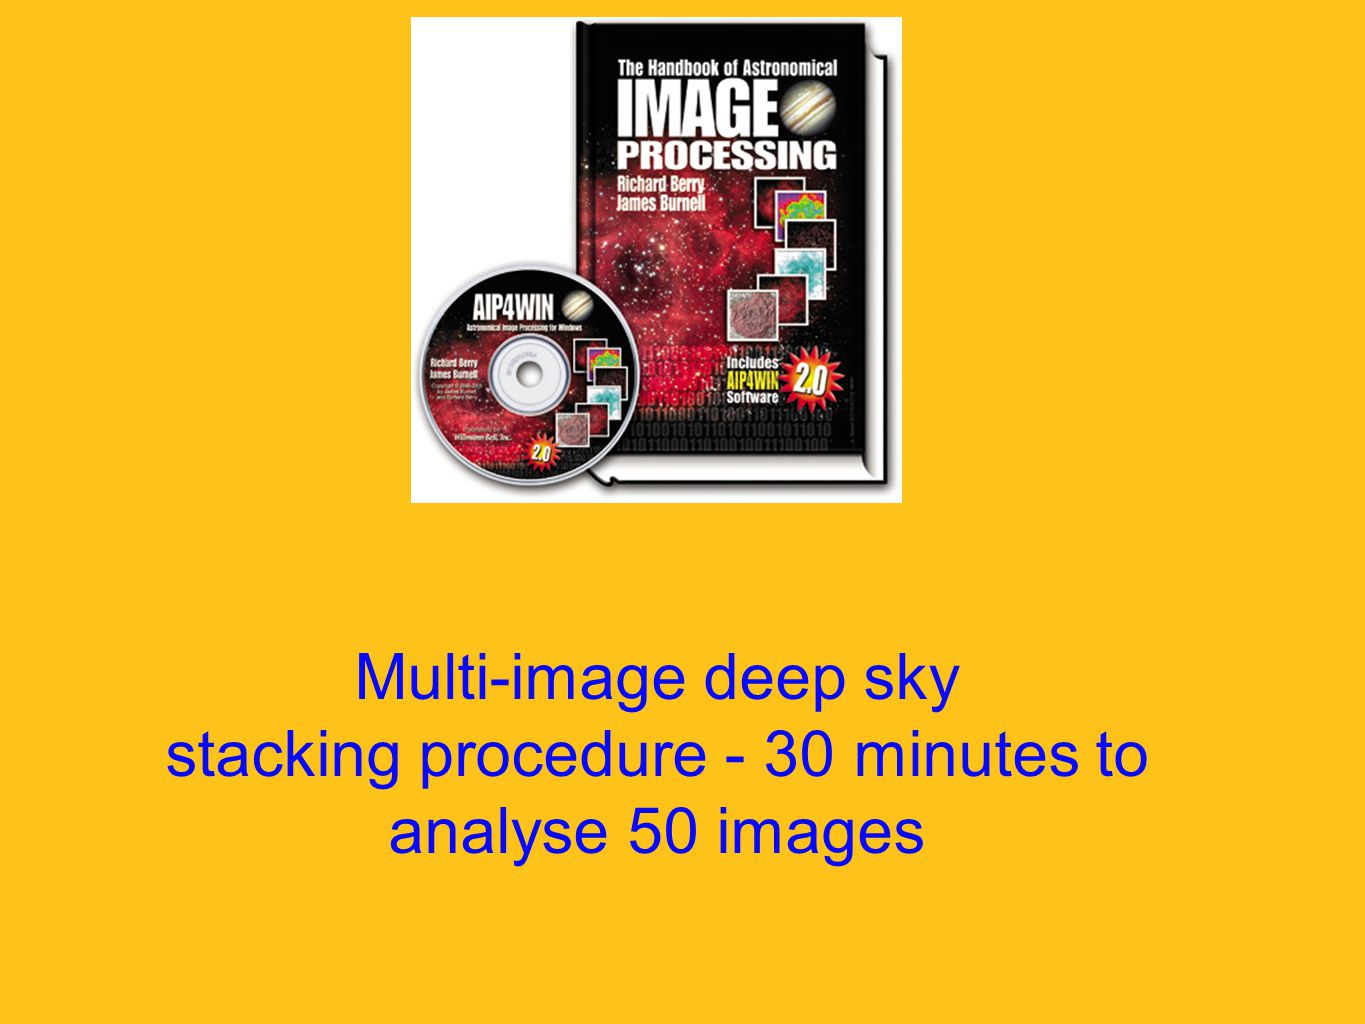 Multi-image deep sky stacking procedure - 30 minutes to analyse 50 images